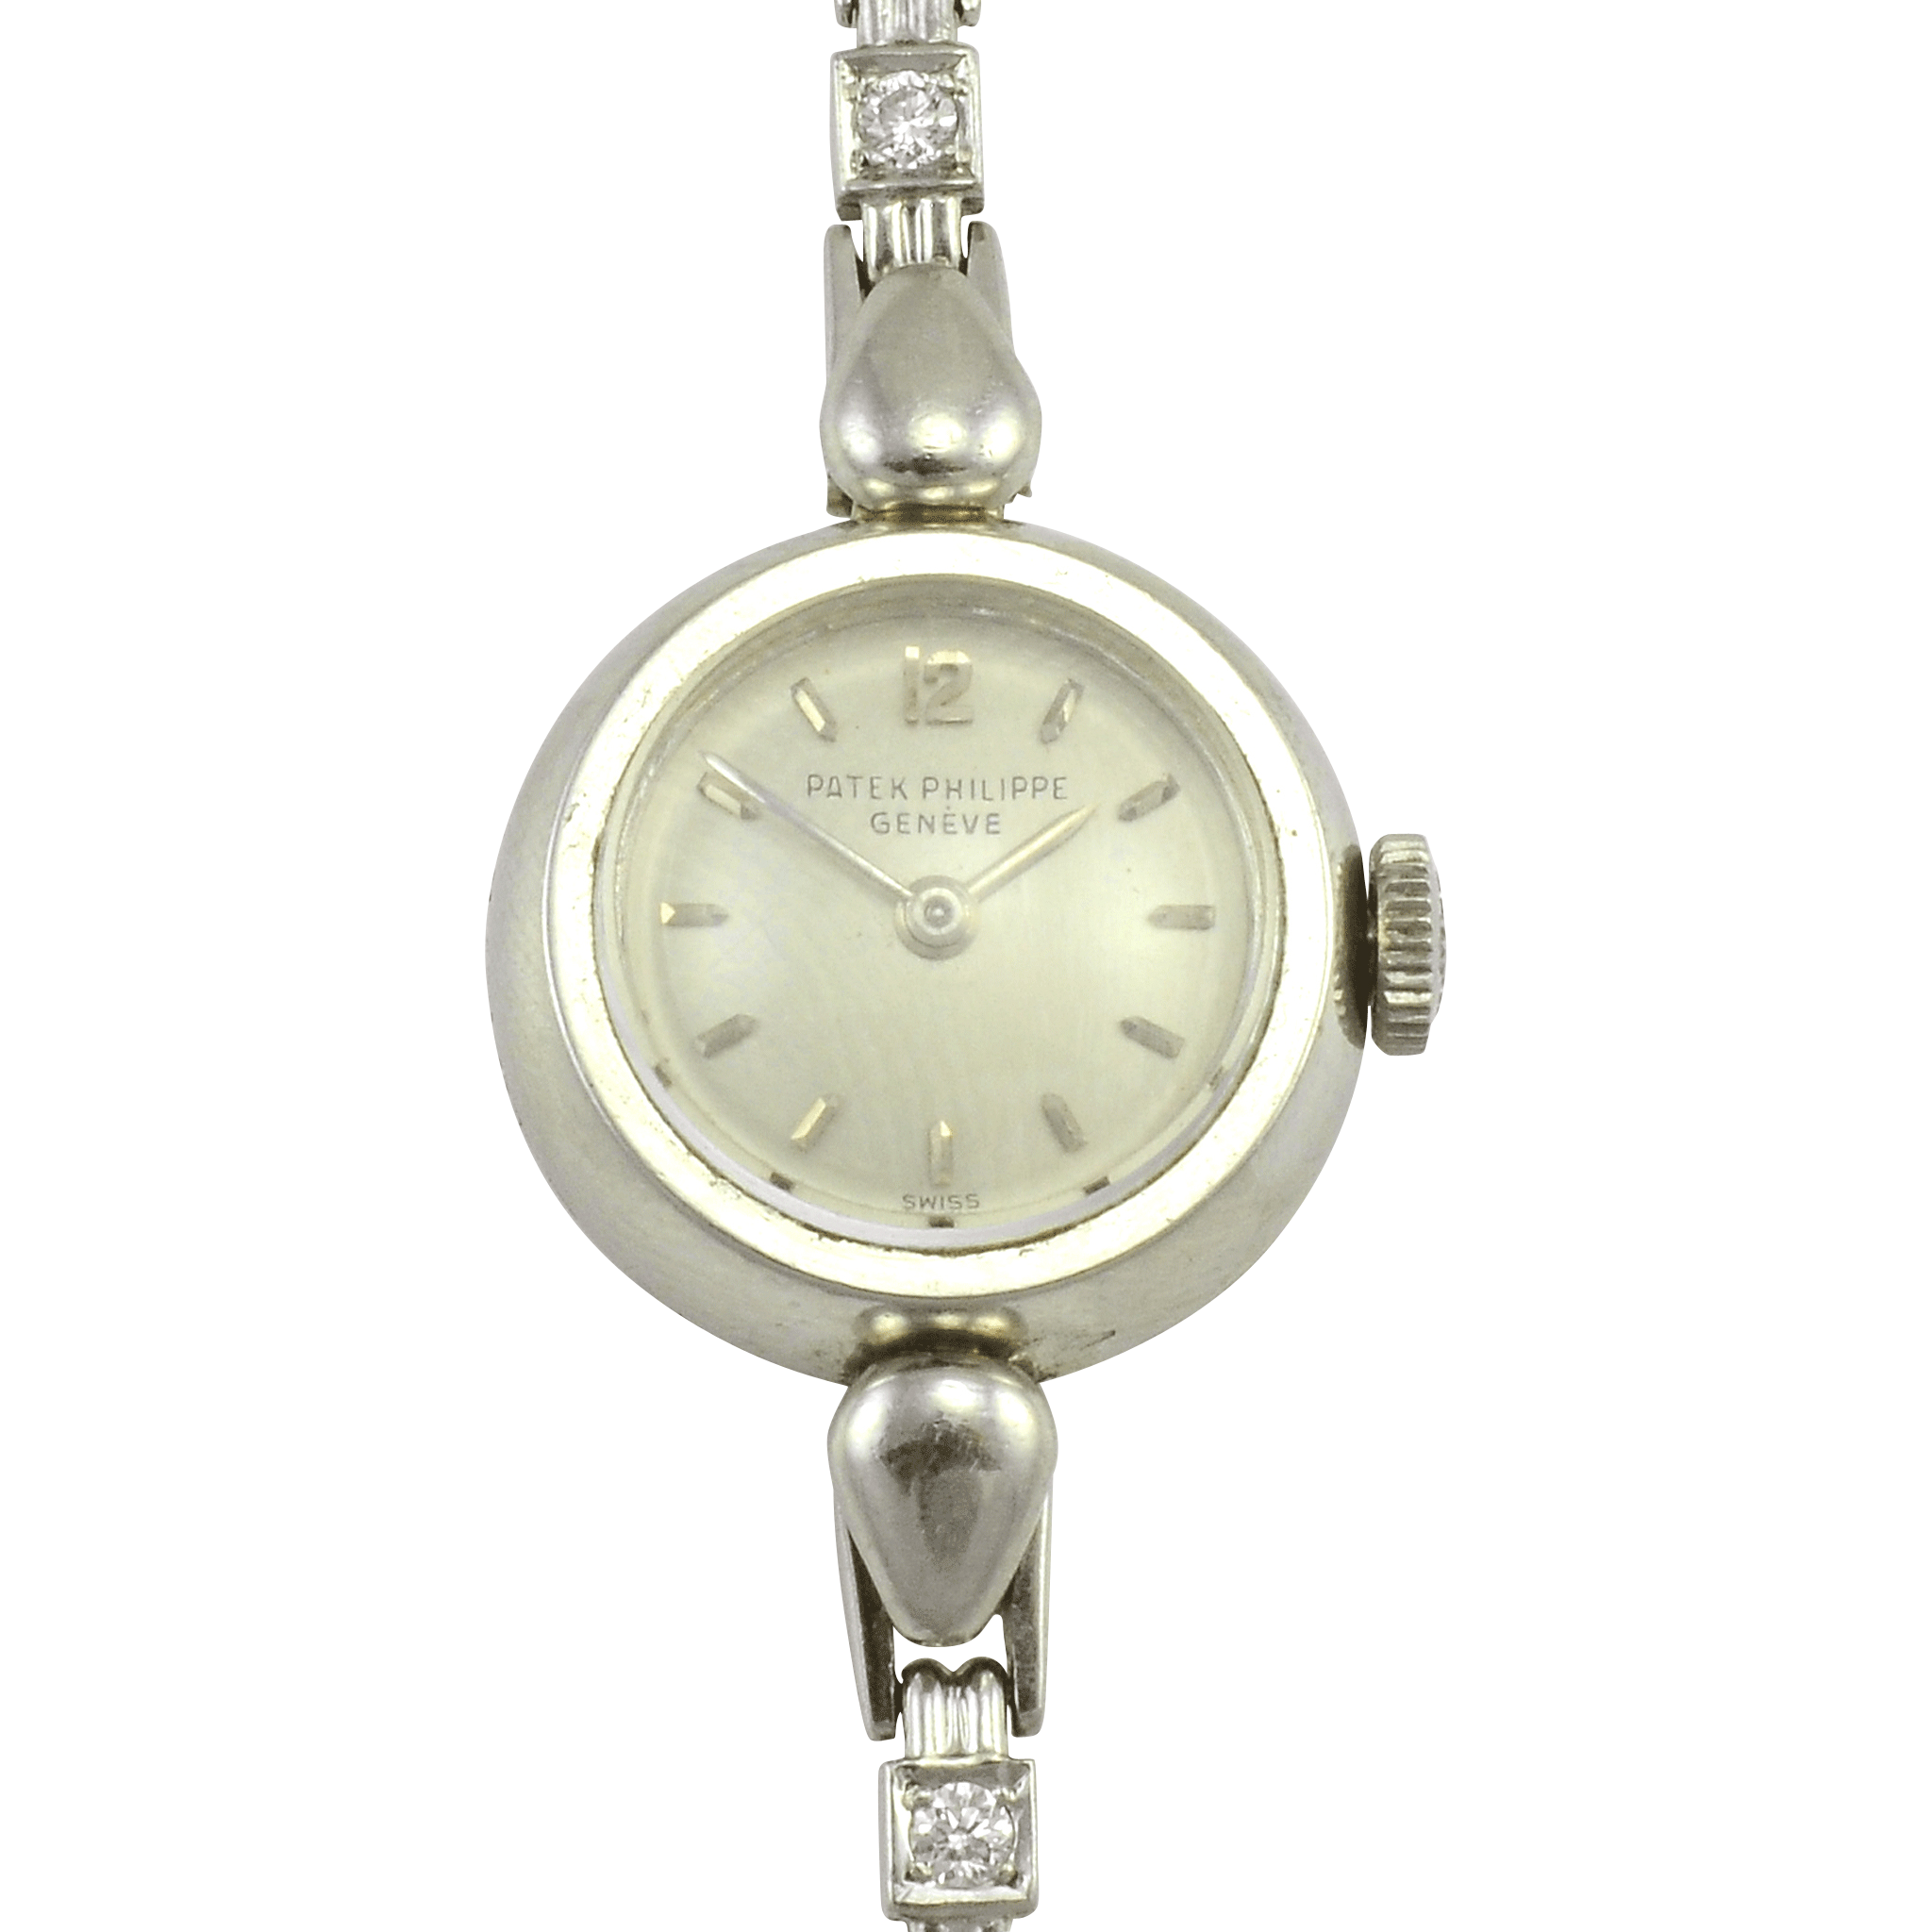 Swiss Patek Philippe Ladies Diamond Platinum Wrist Watch